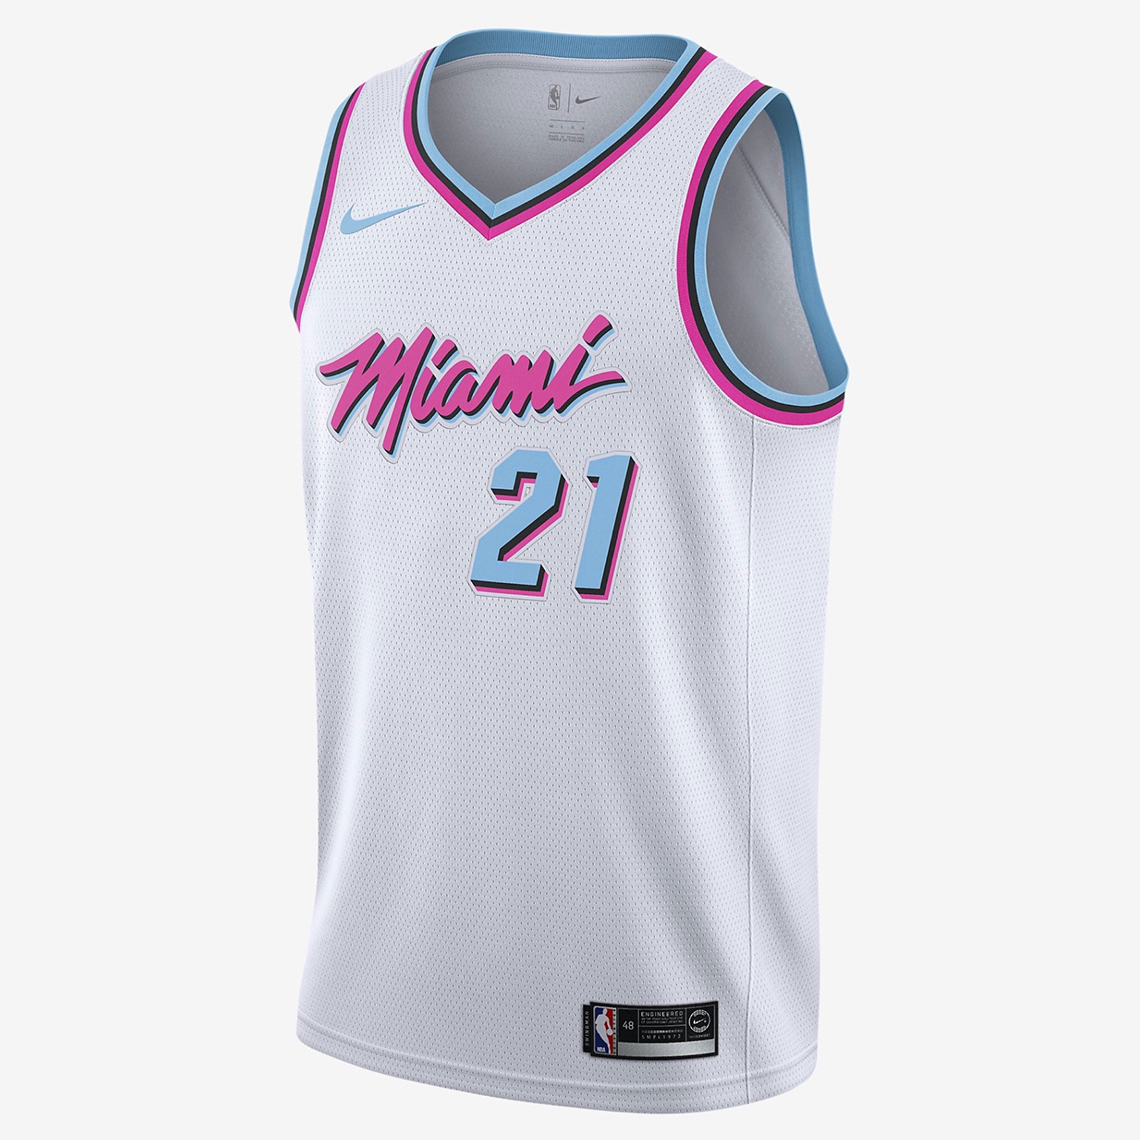 f1ef34ed6bc But first, look below for a detailed shot of your favorite team's new City  Edition jersey. (Note: The Toronto Raptors will be revealing their uniforms  at a ...